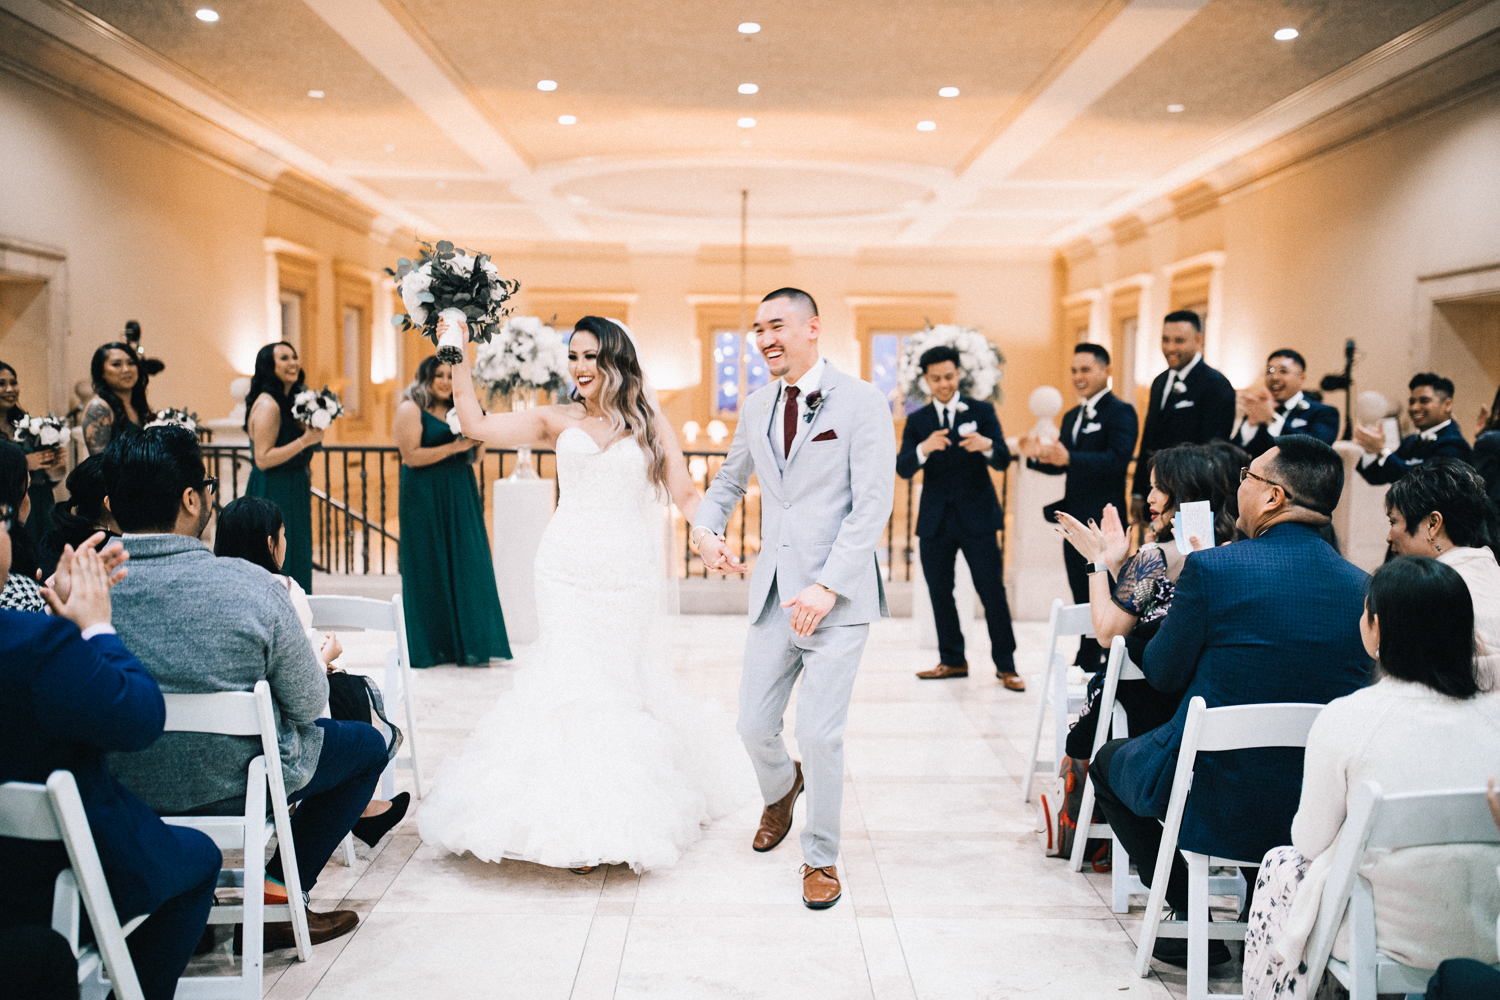 2019_01_ 202019.01.20 Santiago Wedding Blog Photos Edited For Web 0091.jpg